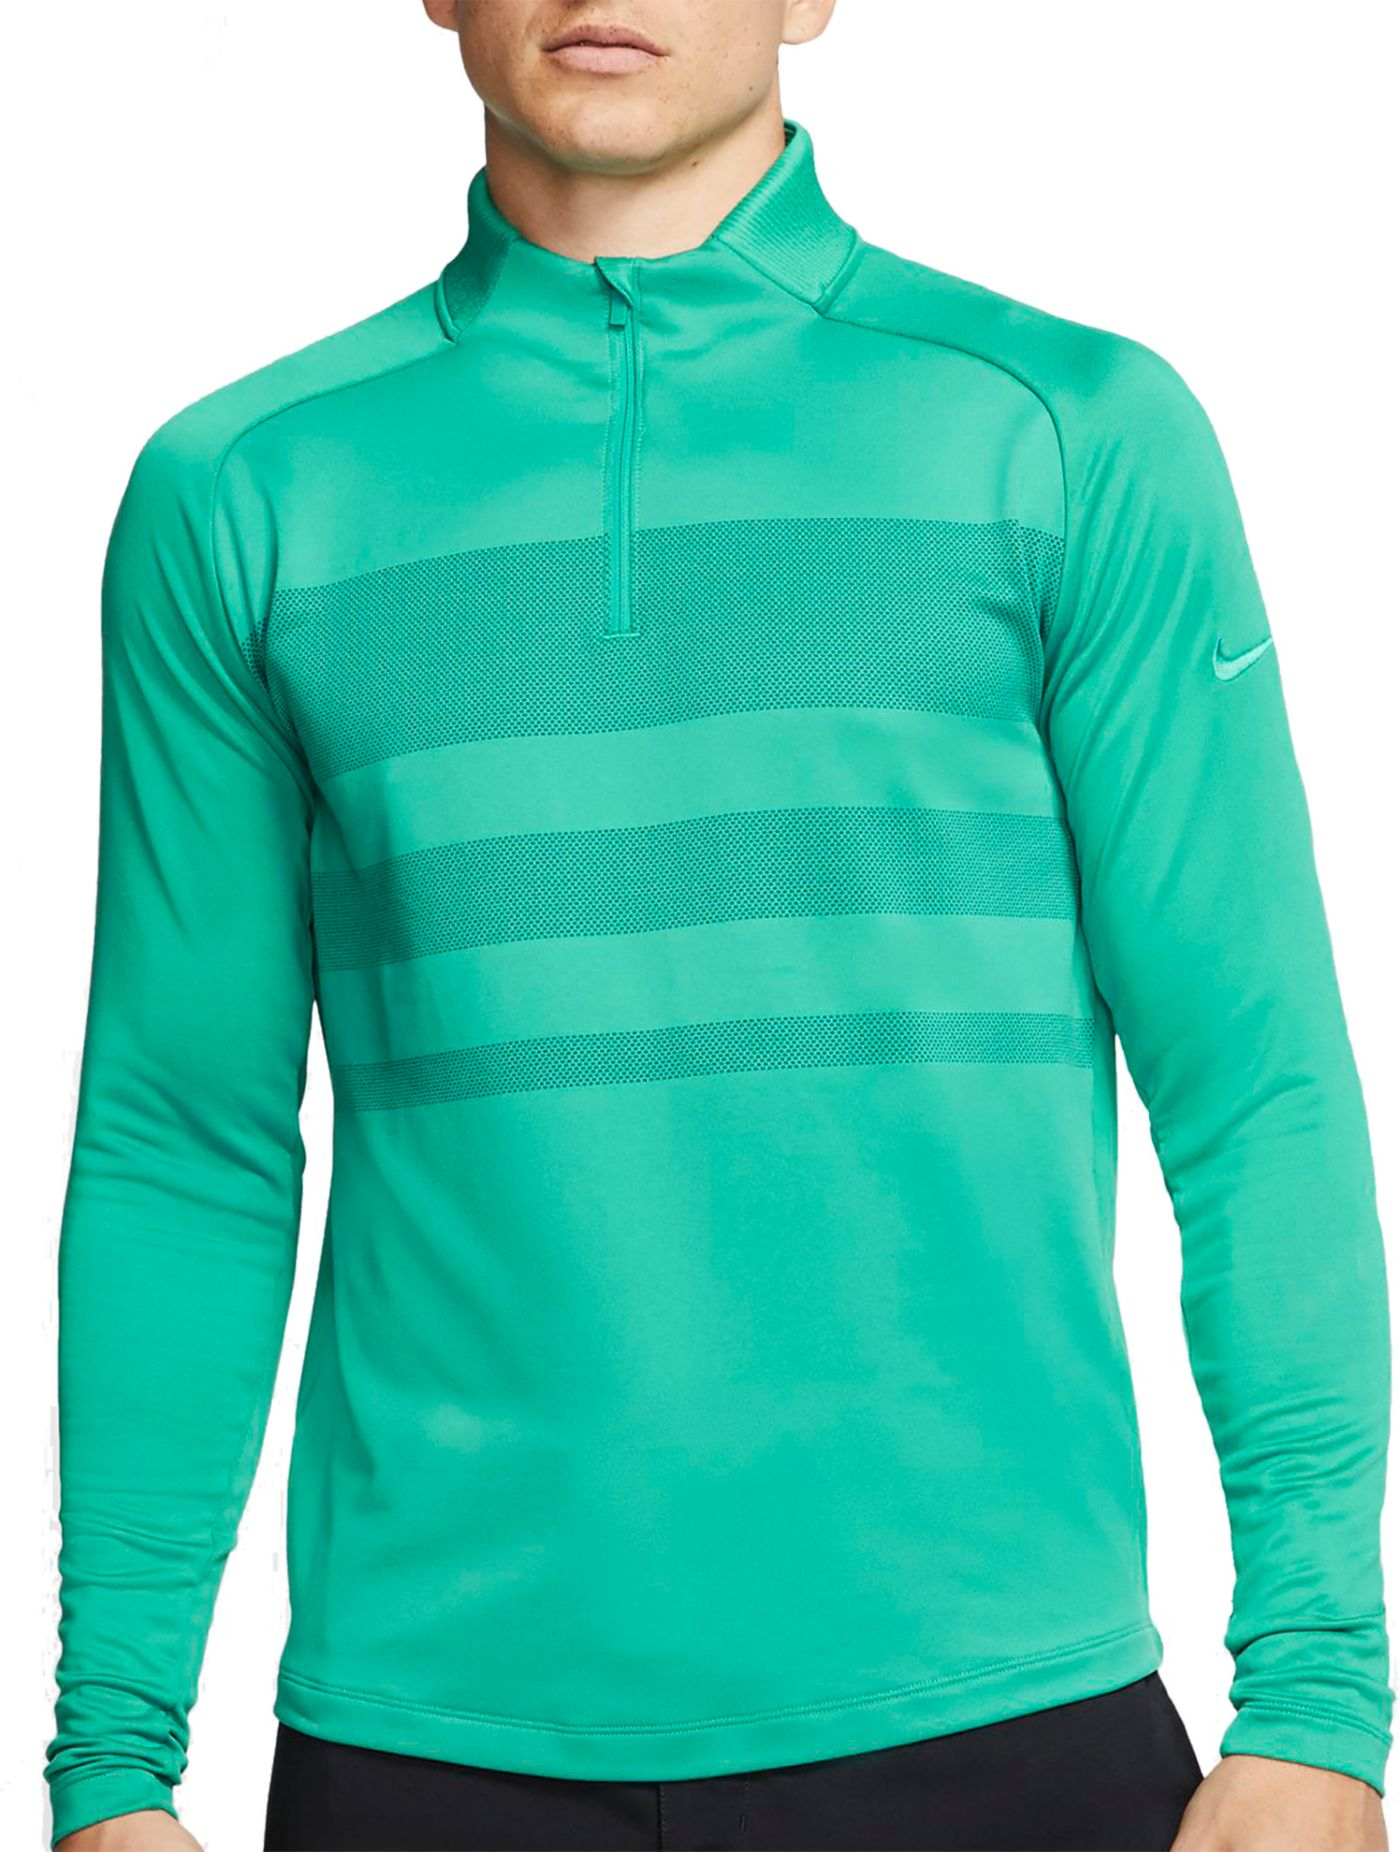 Nike Men's Dri-FIT Vapor ½ Zip Golf Pullover